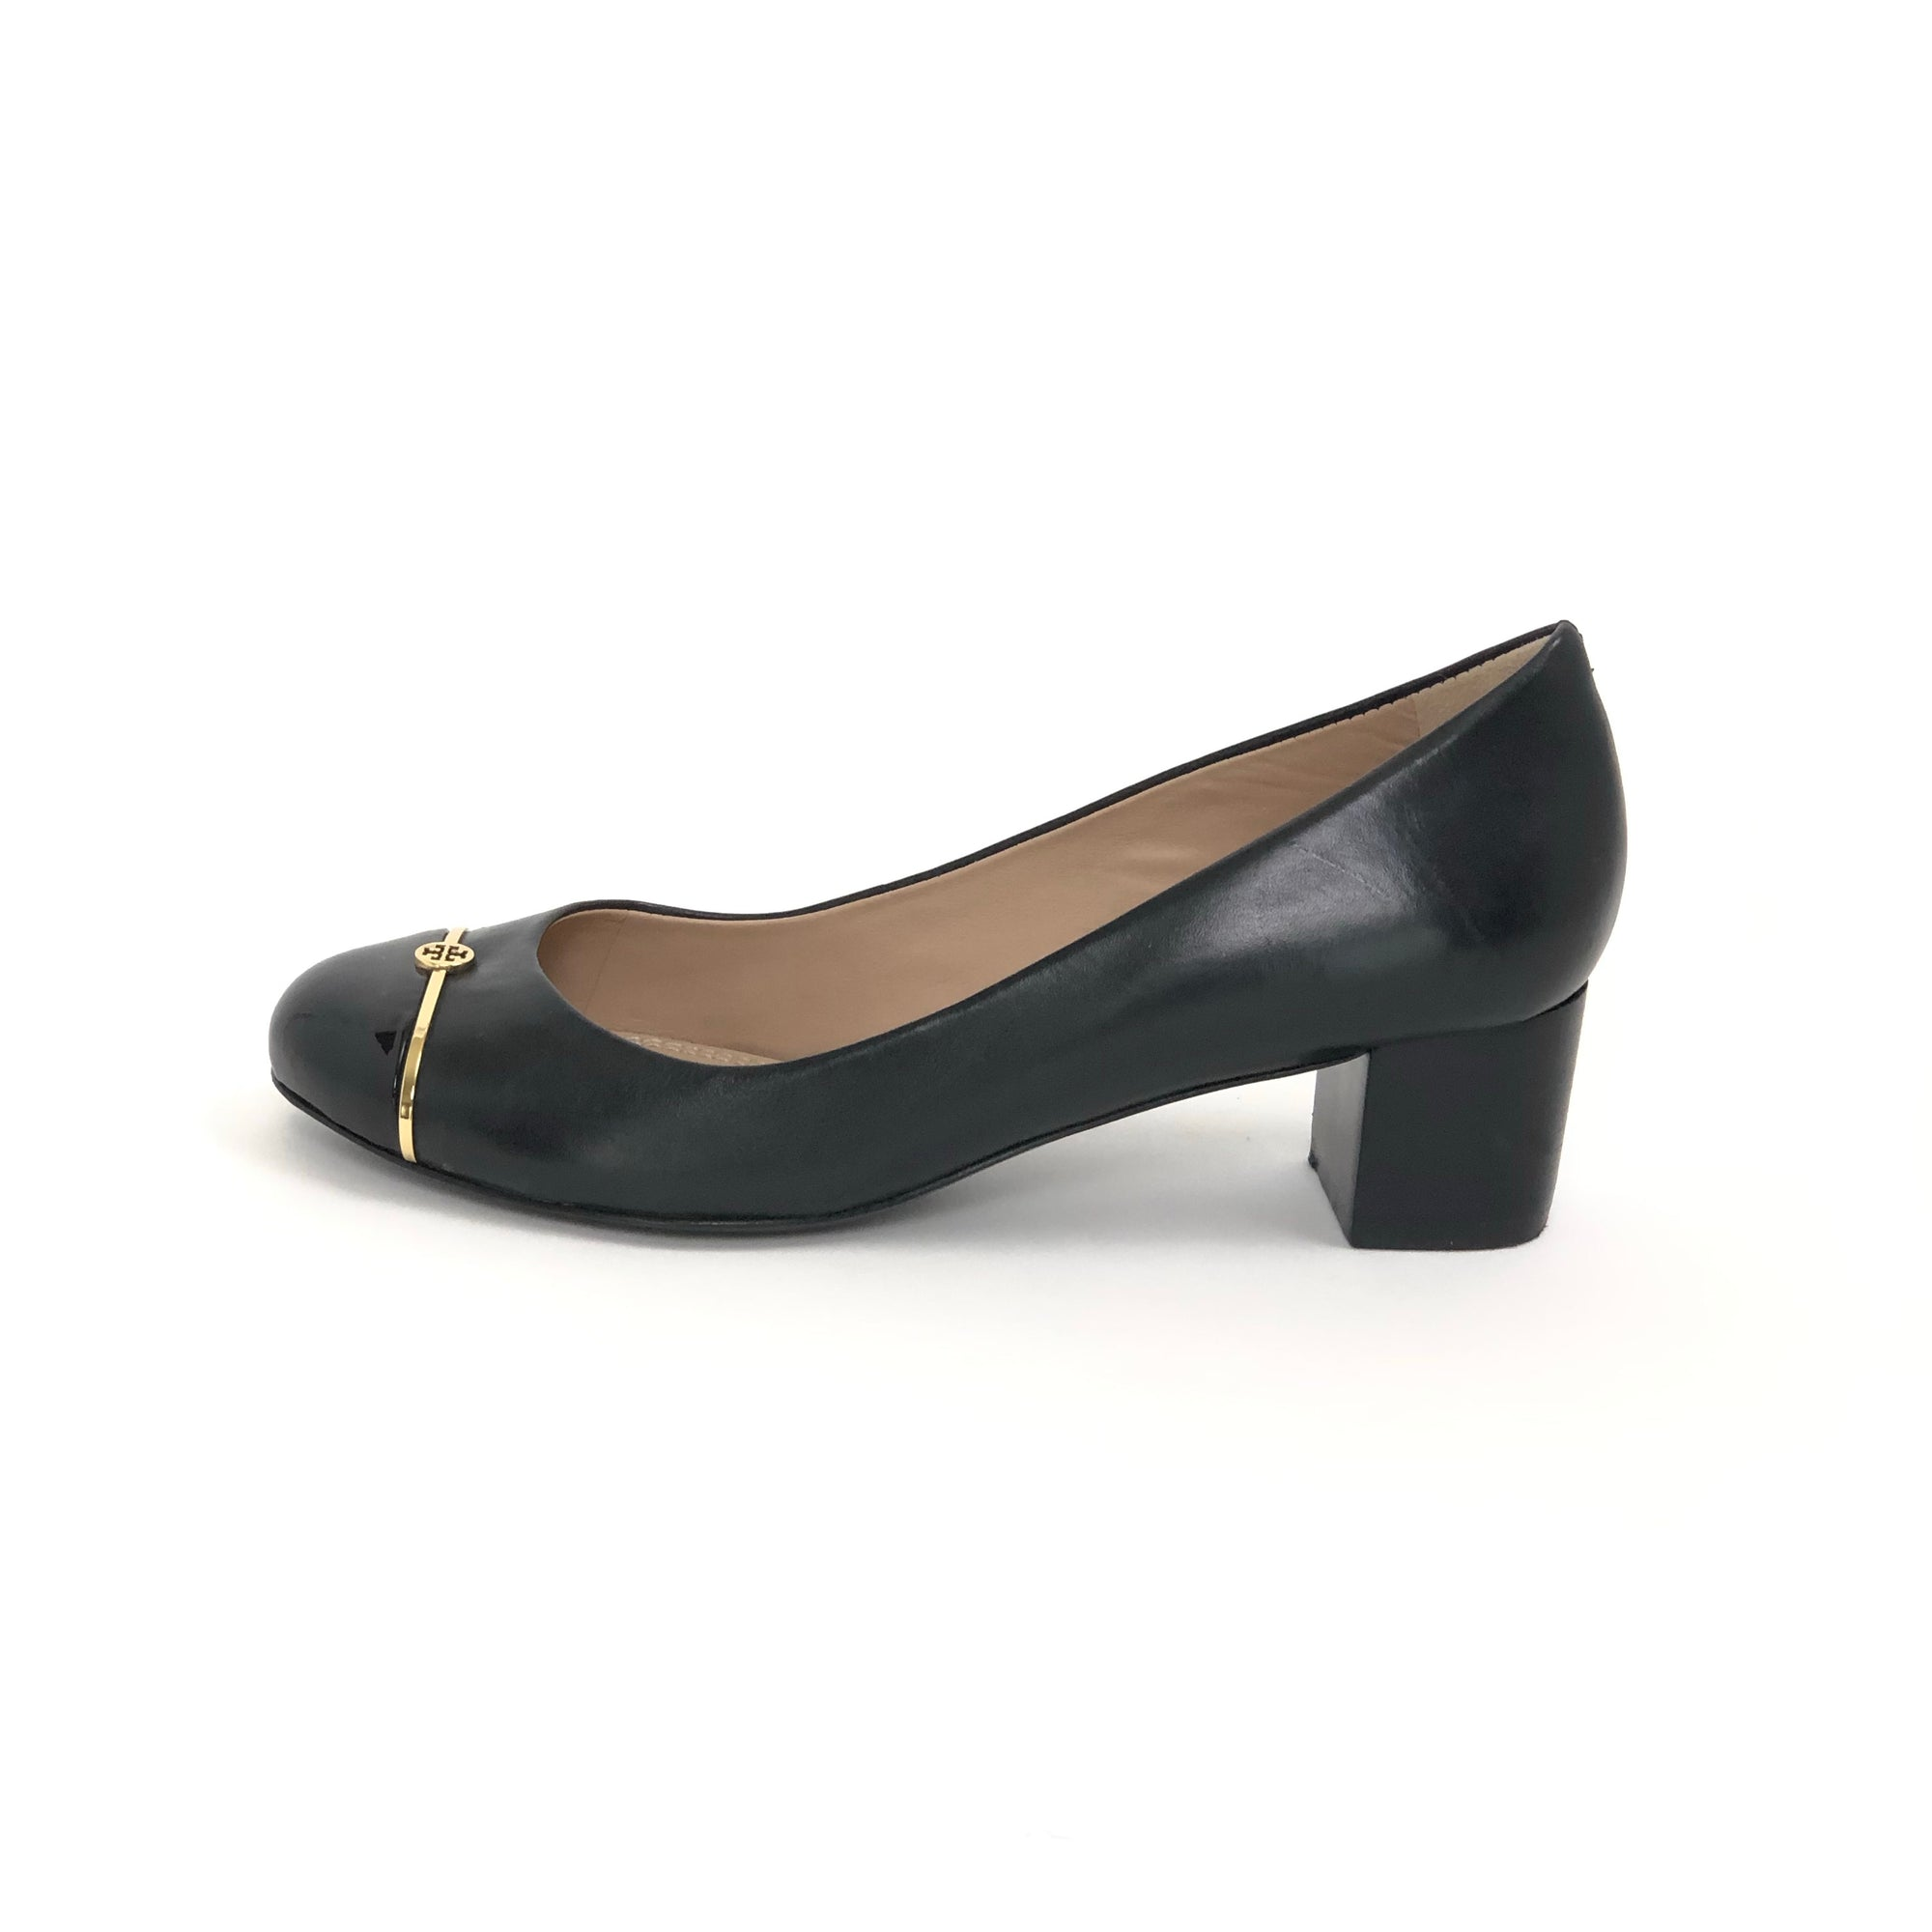 Tory Burch Pacey Cap-Toe Pump Black, Size 7